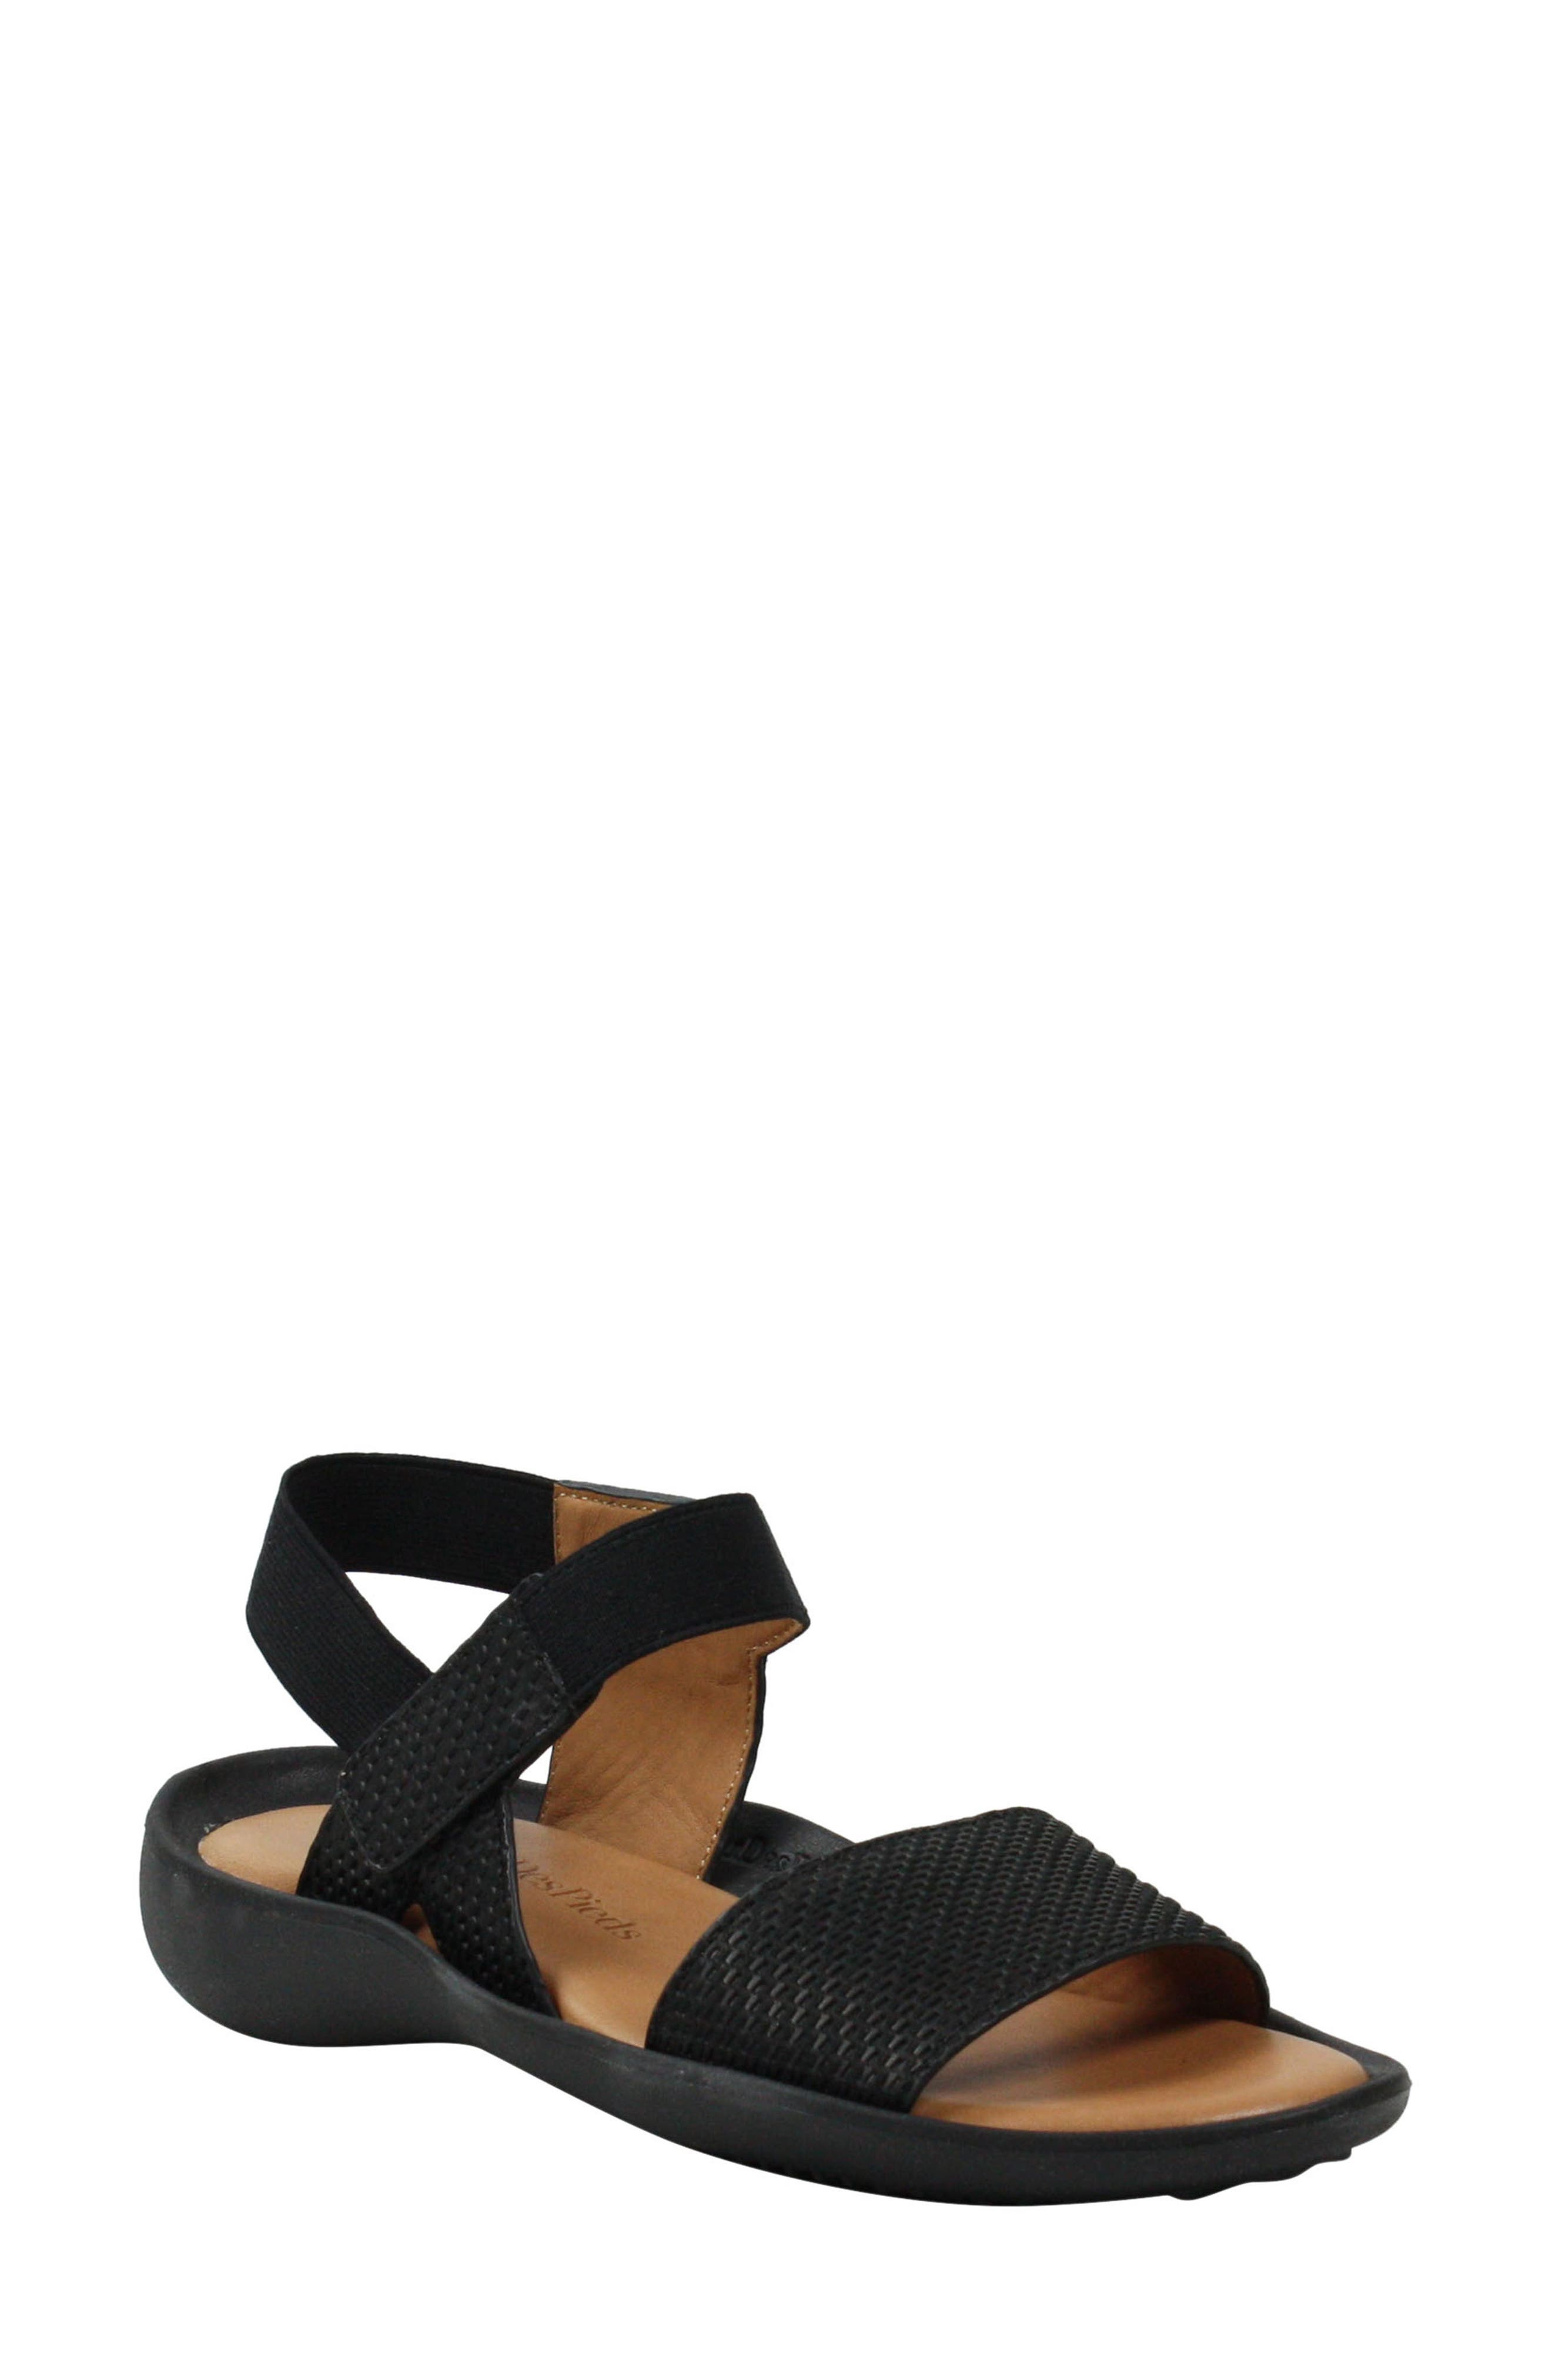 L'AMOUR DES PIEDS Nolwyn Sandal, Main, color, BLACK WOVEN LEATHER